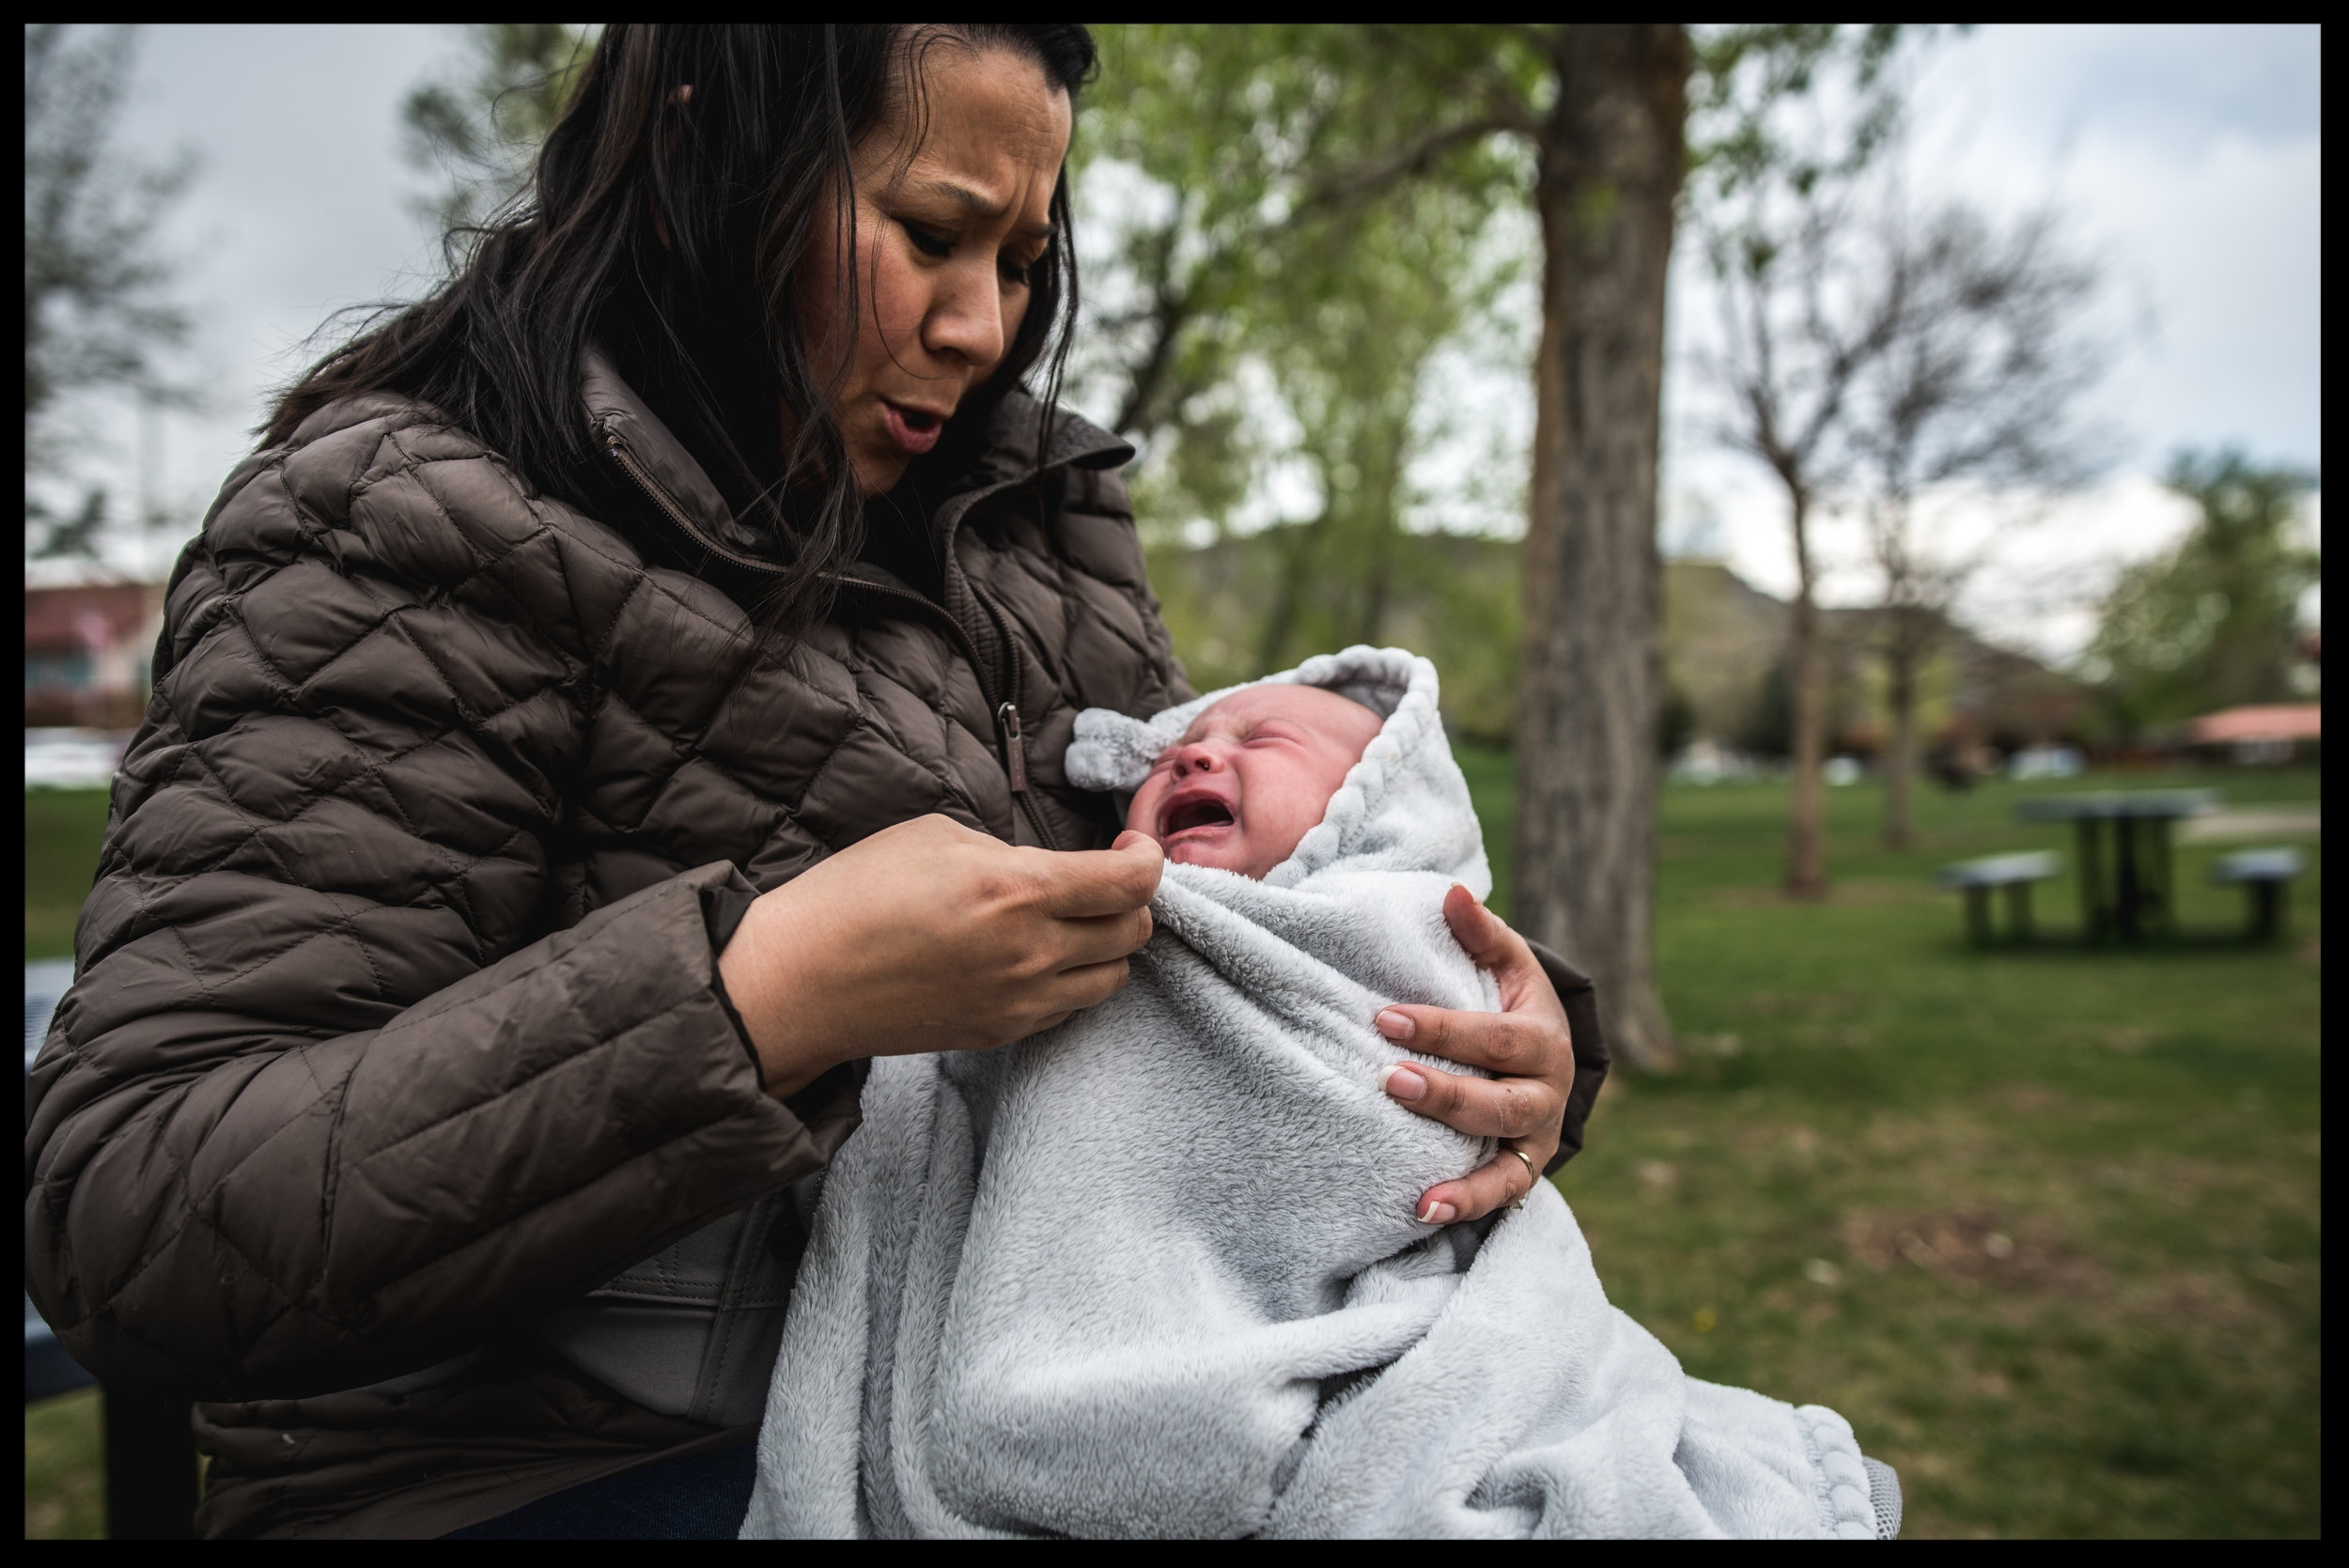 Baby in his mother's arms crying, color, Golden, Colorado